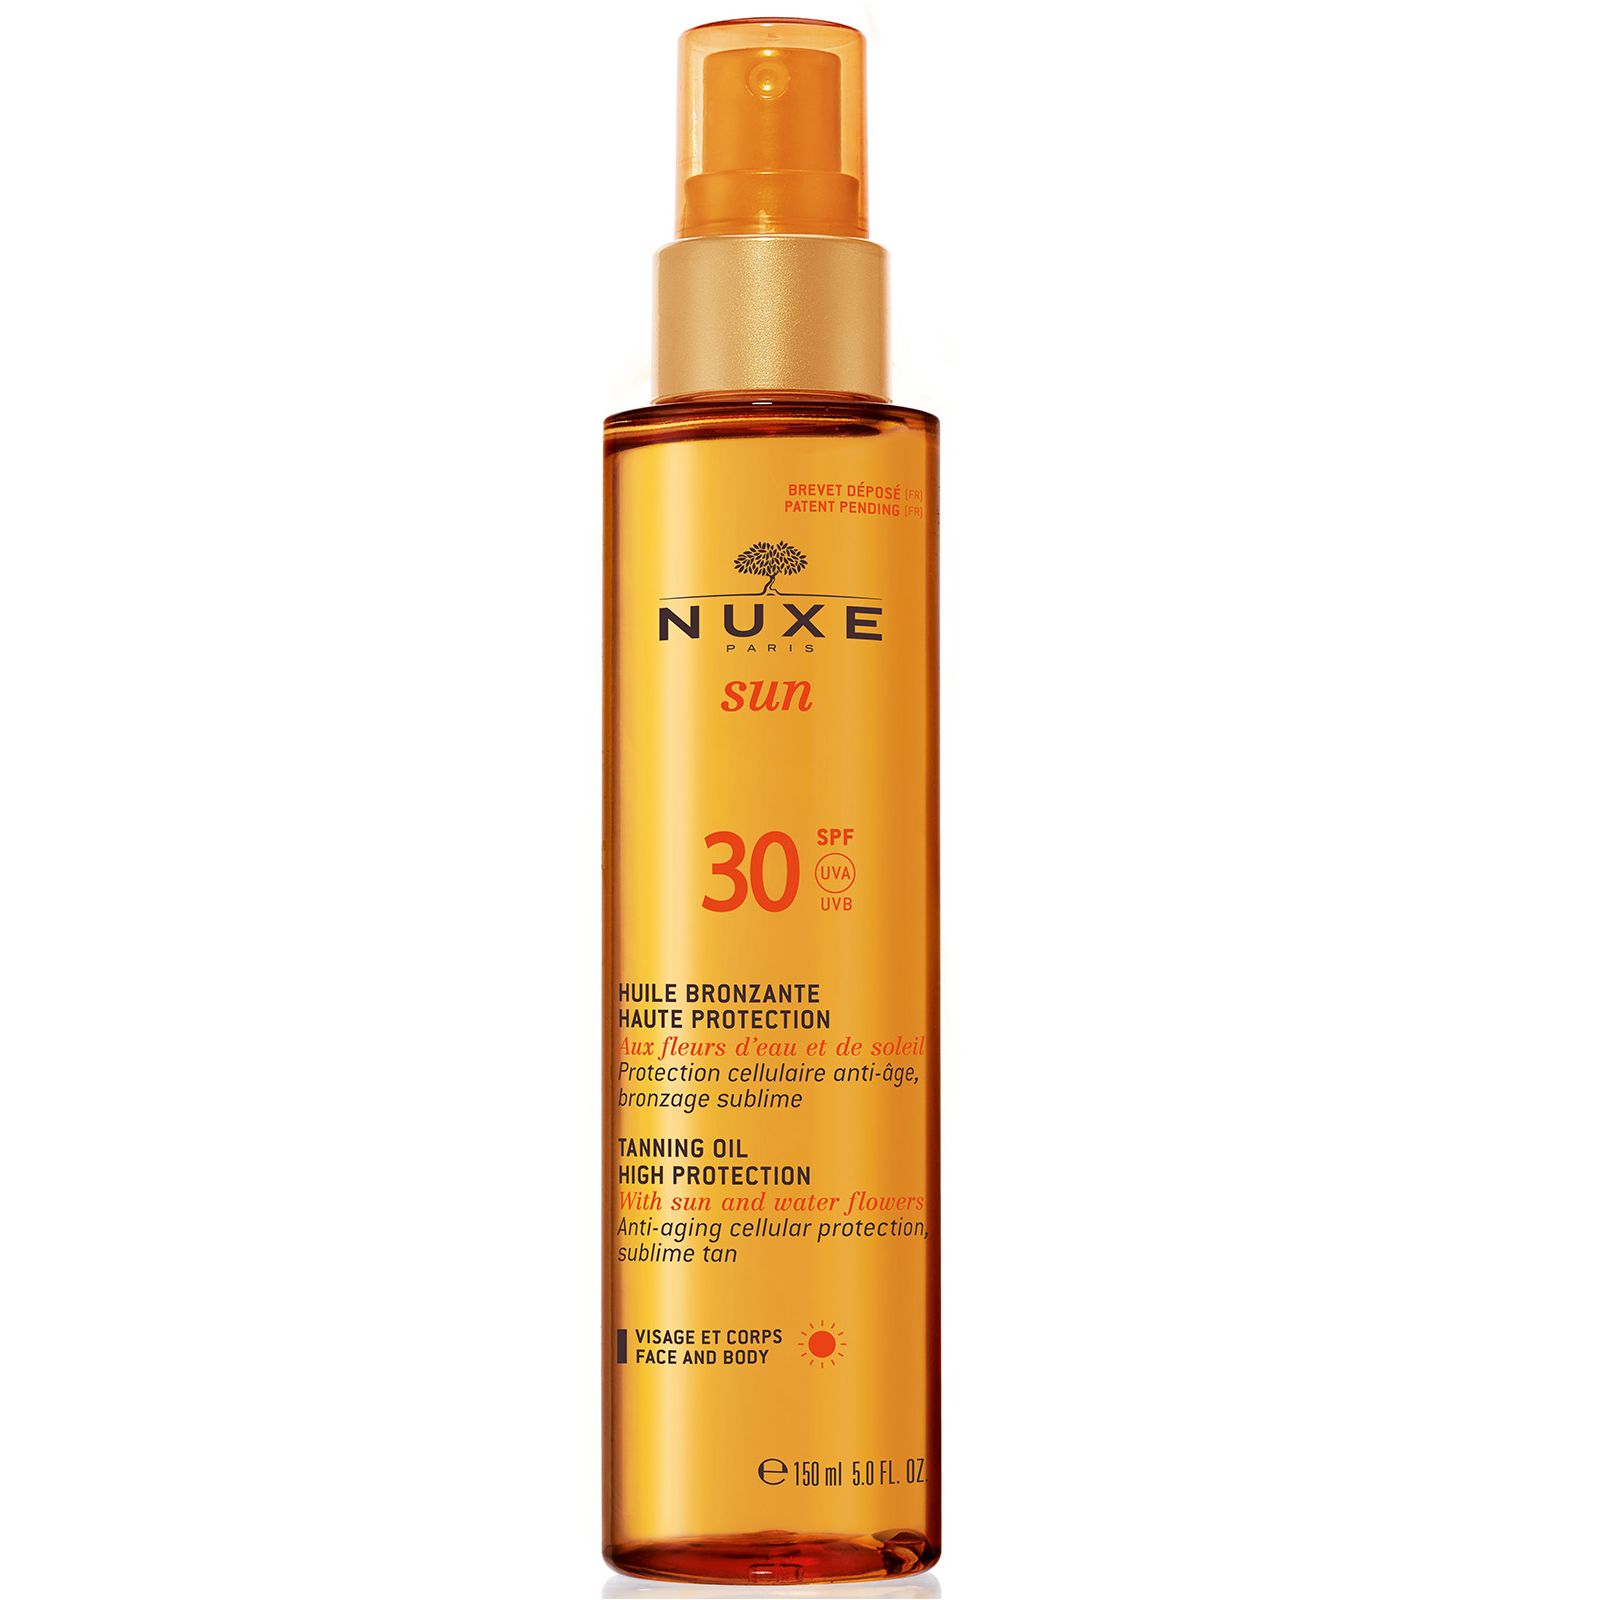 Nuxe Sun - Tanning Oil Face and Body 150 ml - SPF 30